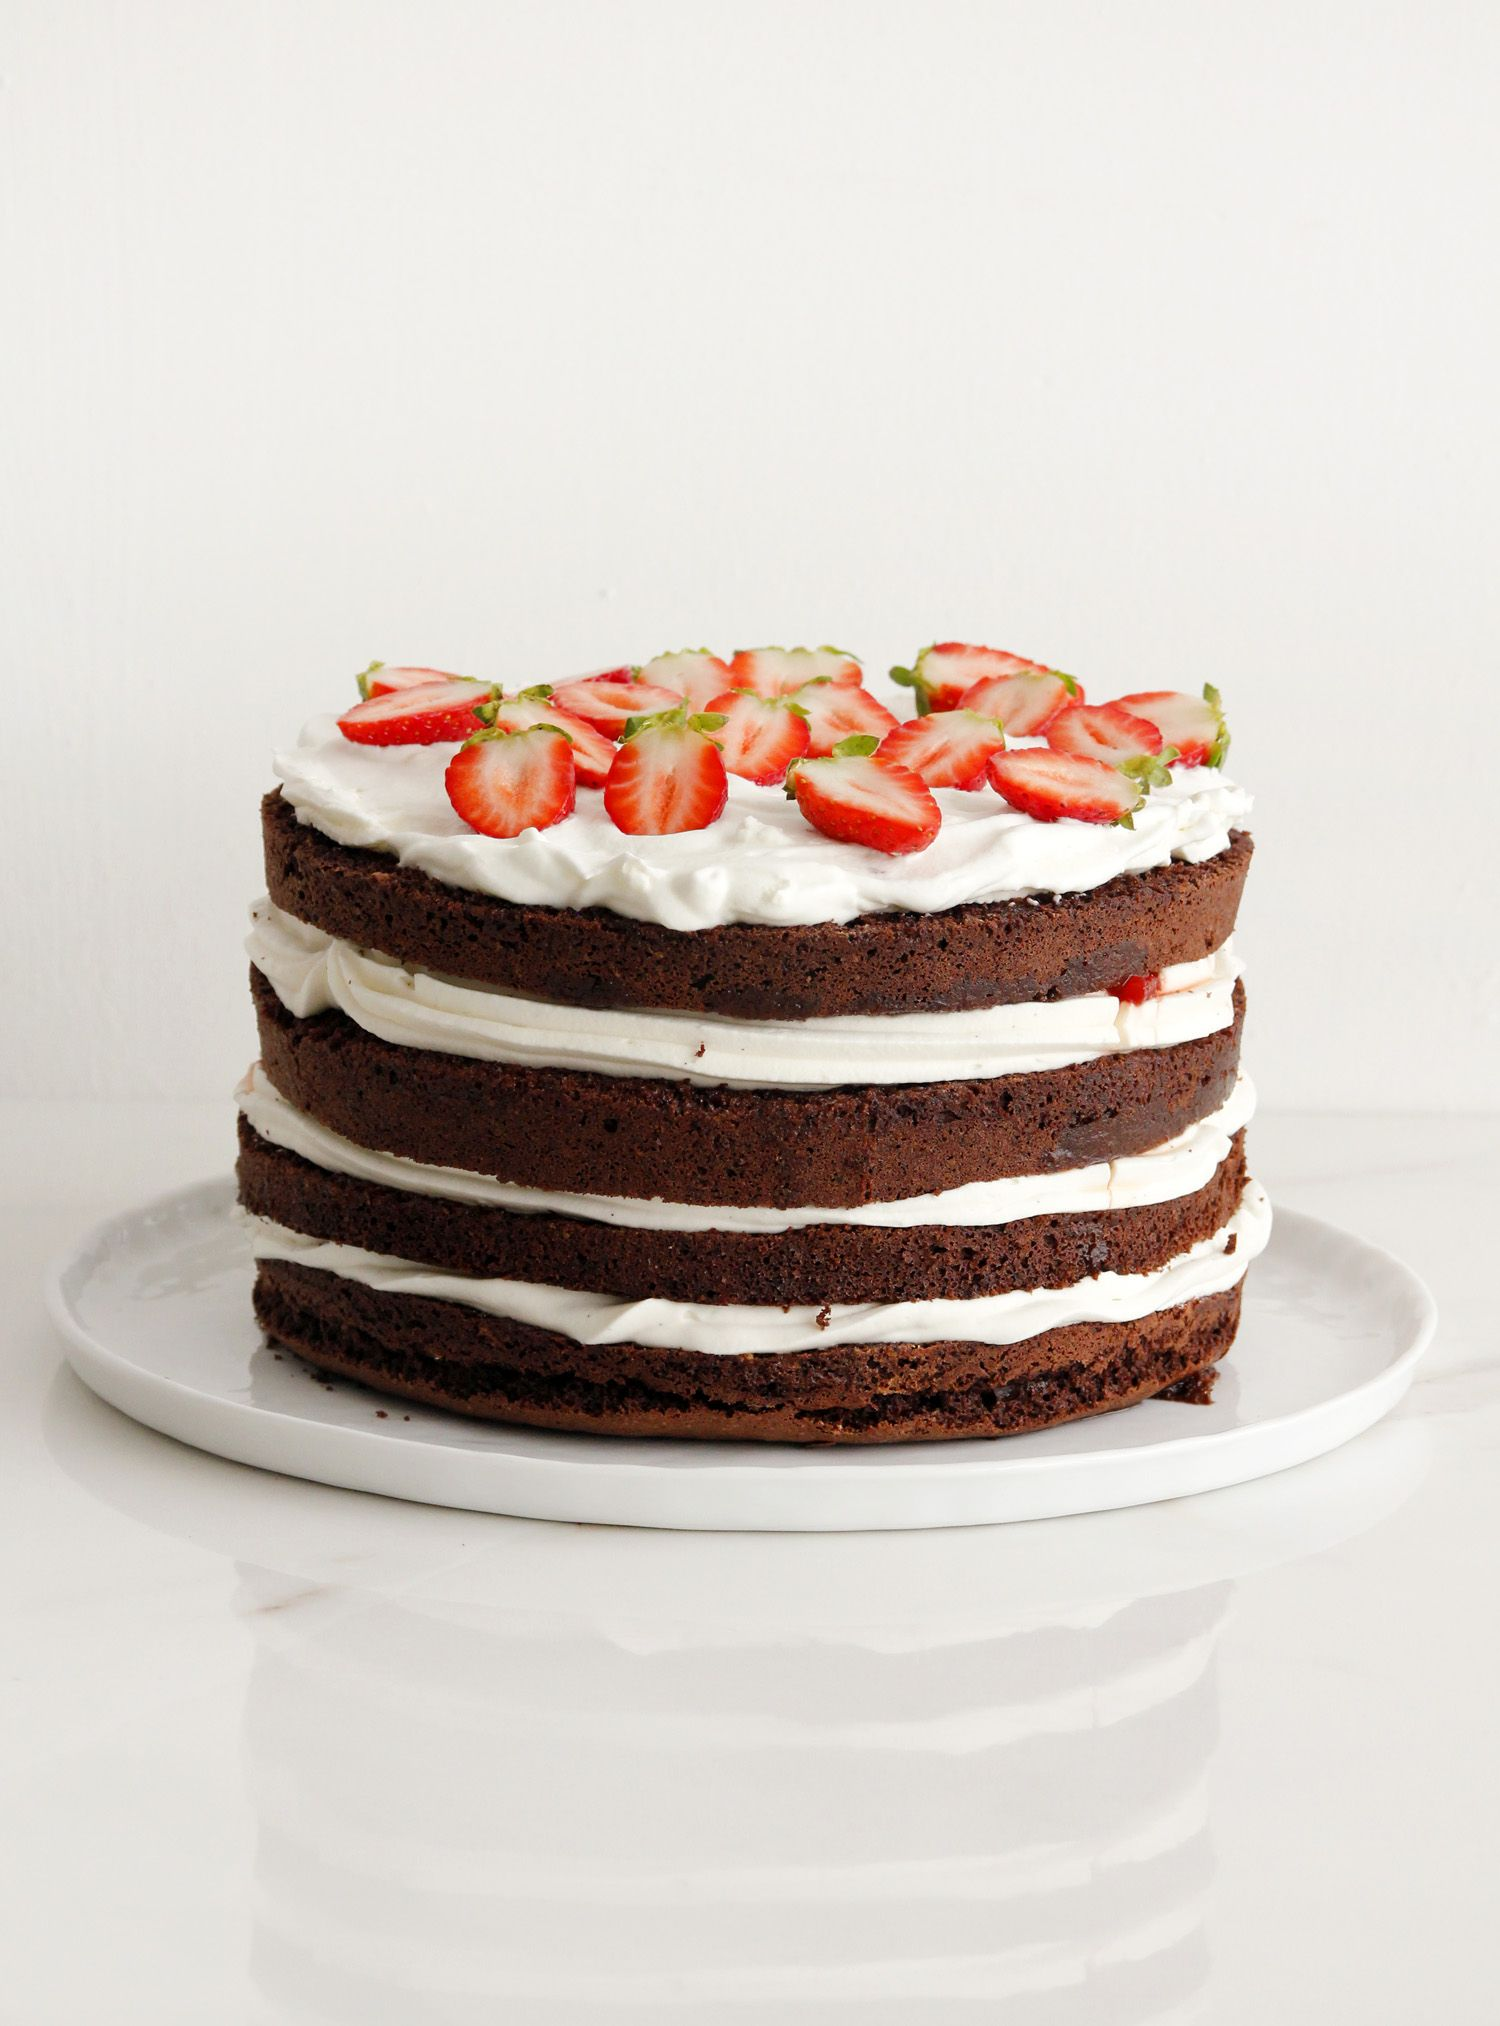 Sky-high Chocolate, Cream and Strawberry Layer Cake